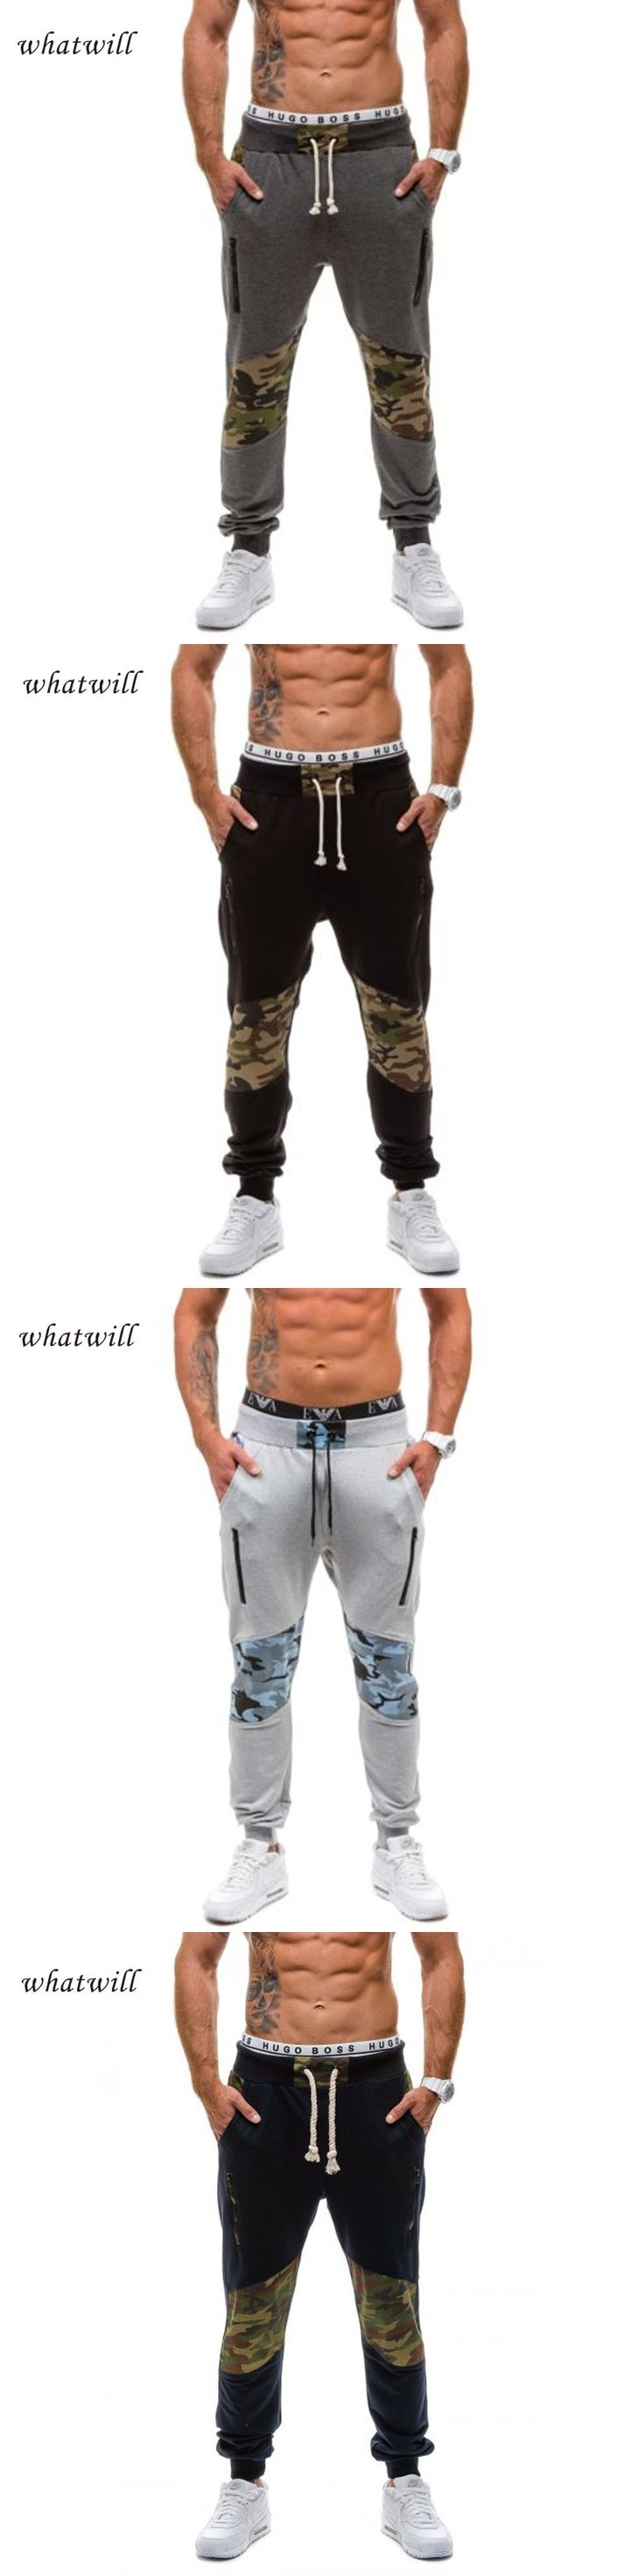 Camouflage style 2017 men pant hip hop joggers casual pantalon homme fashion pantalones hombre fitness trousers sweatpants